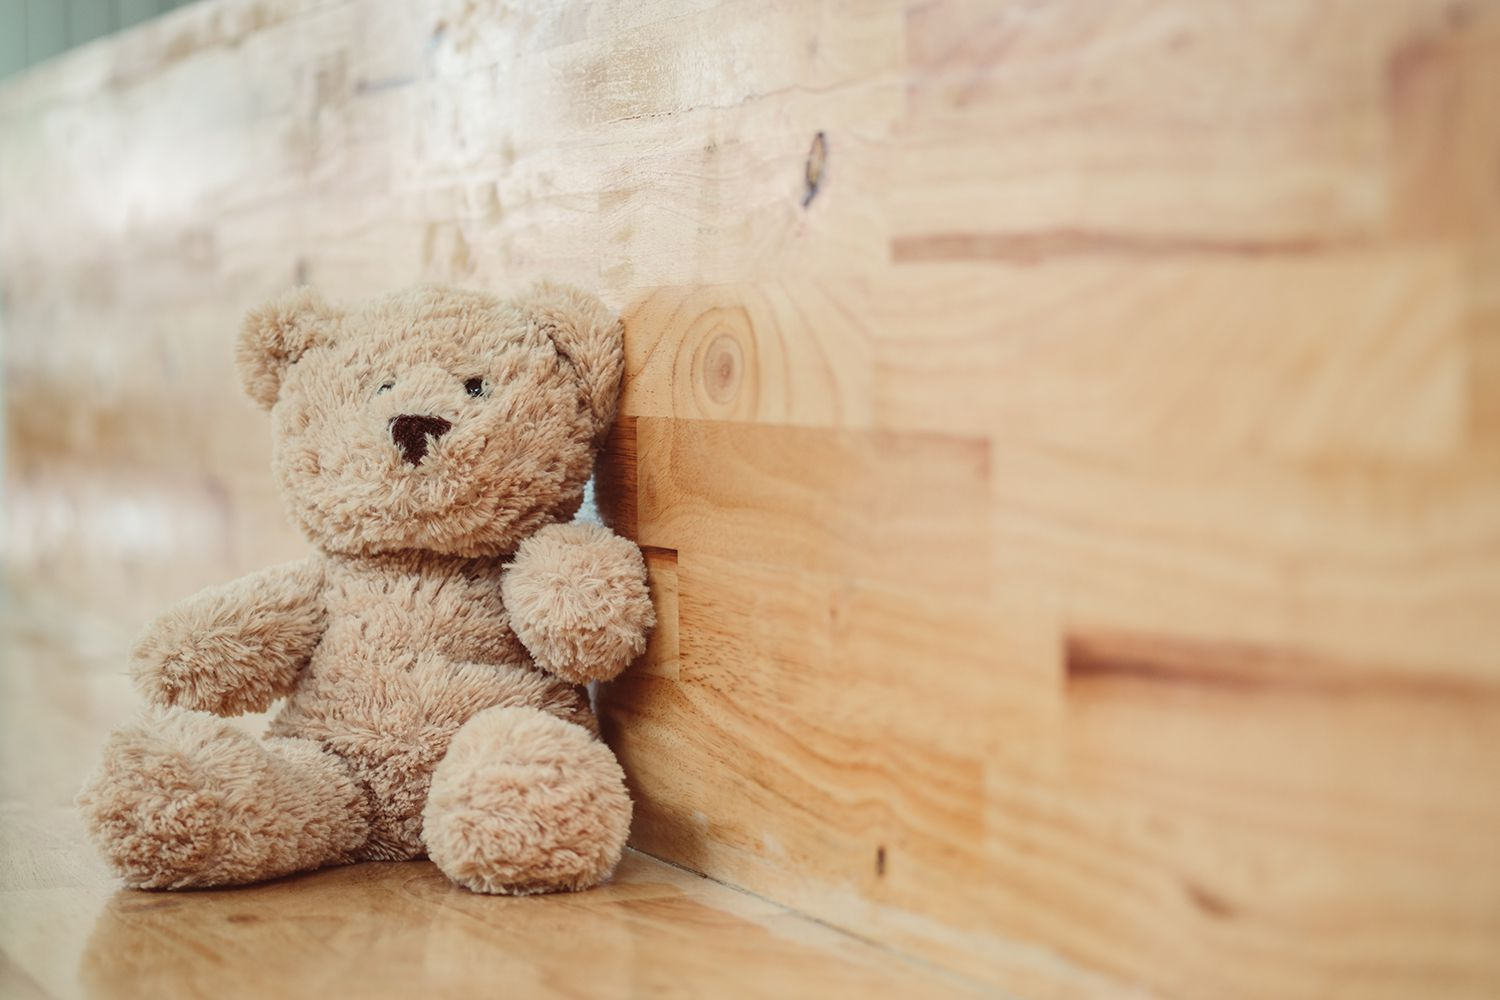 Close-Up Of Stuffed Toy On Wooden Table